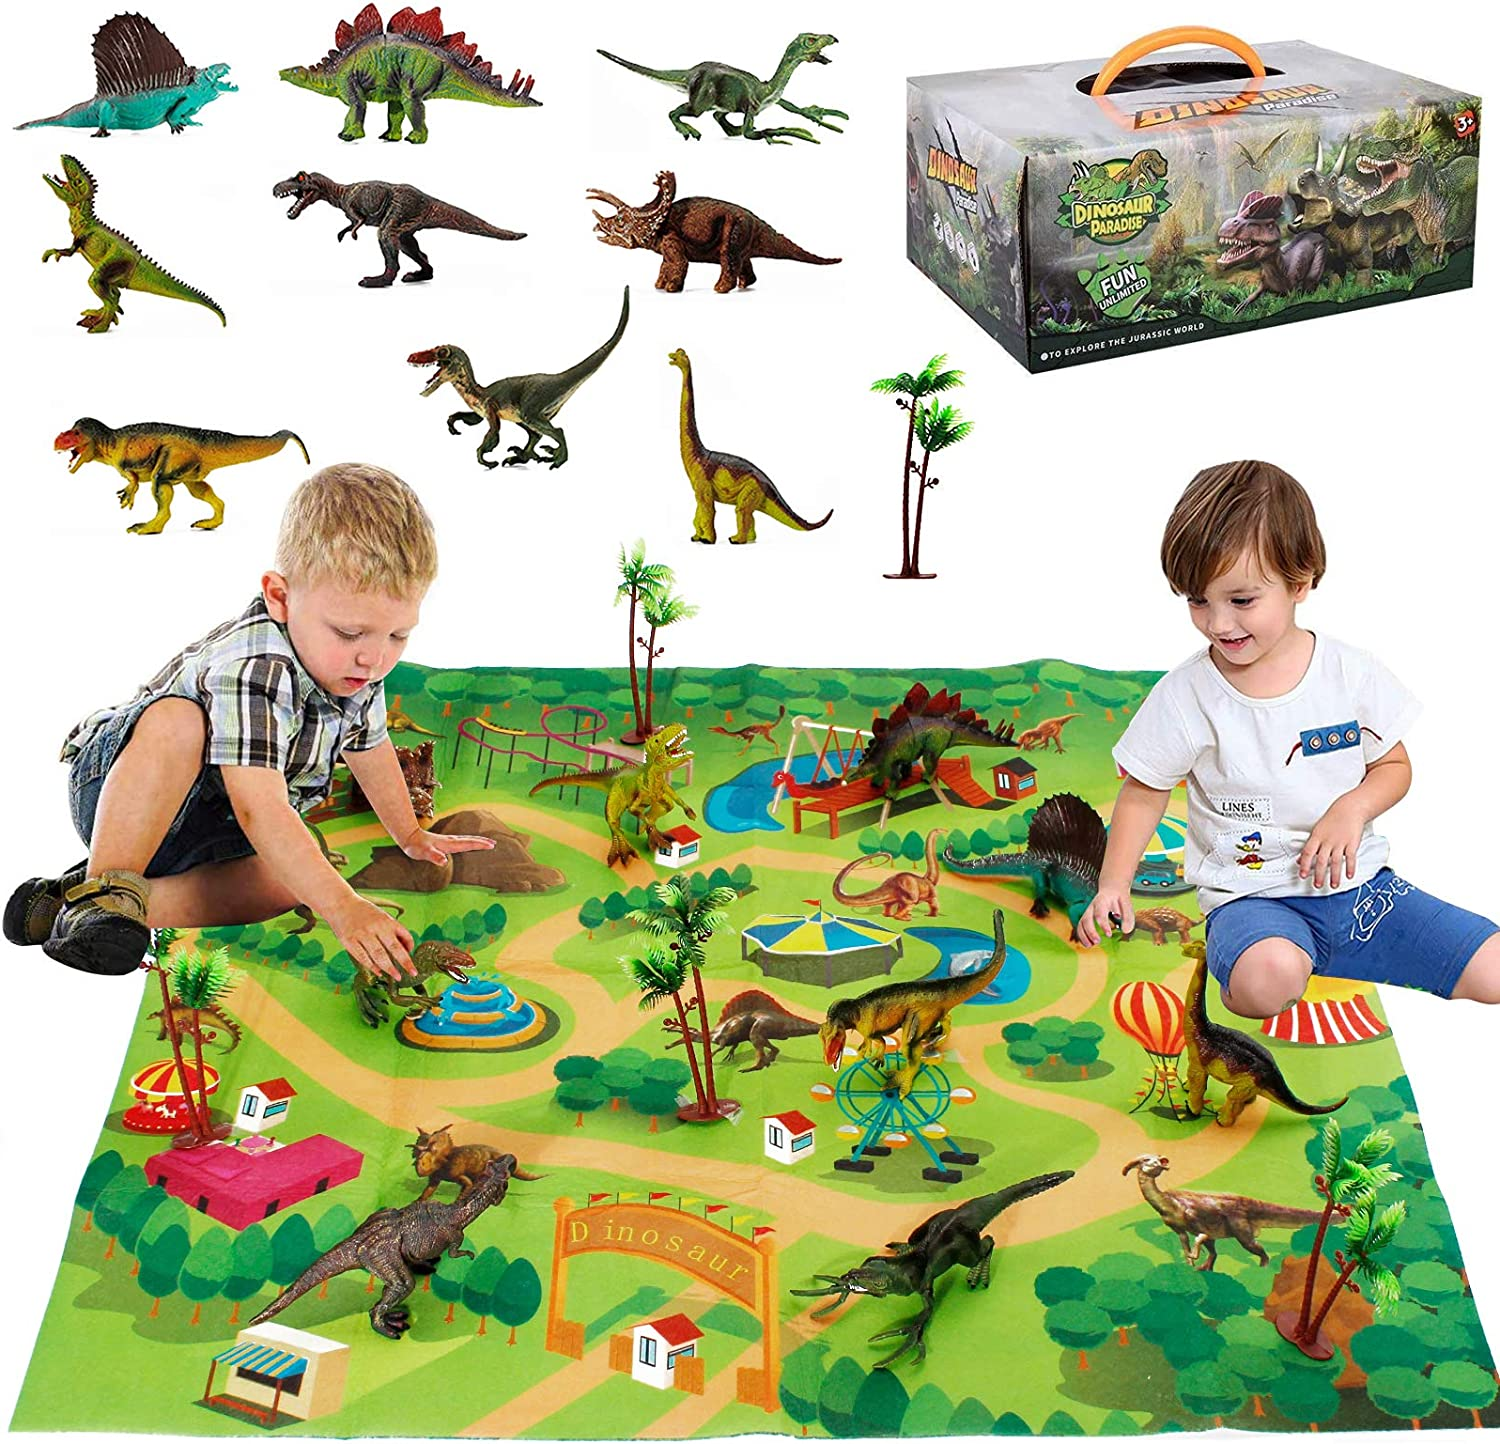 Dinosaur toy figure with playmat & trees, detachable educational playset